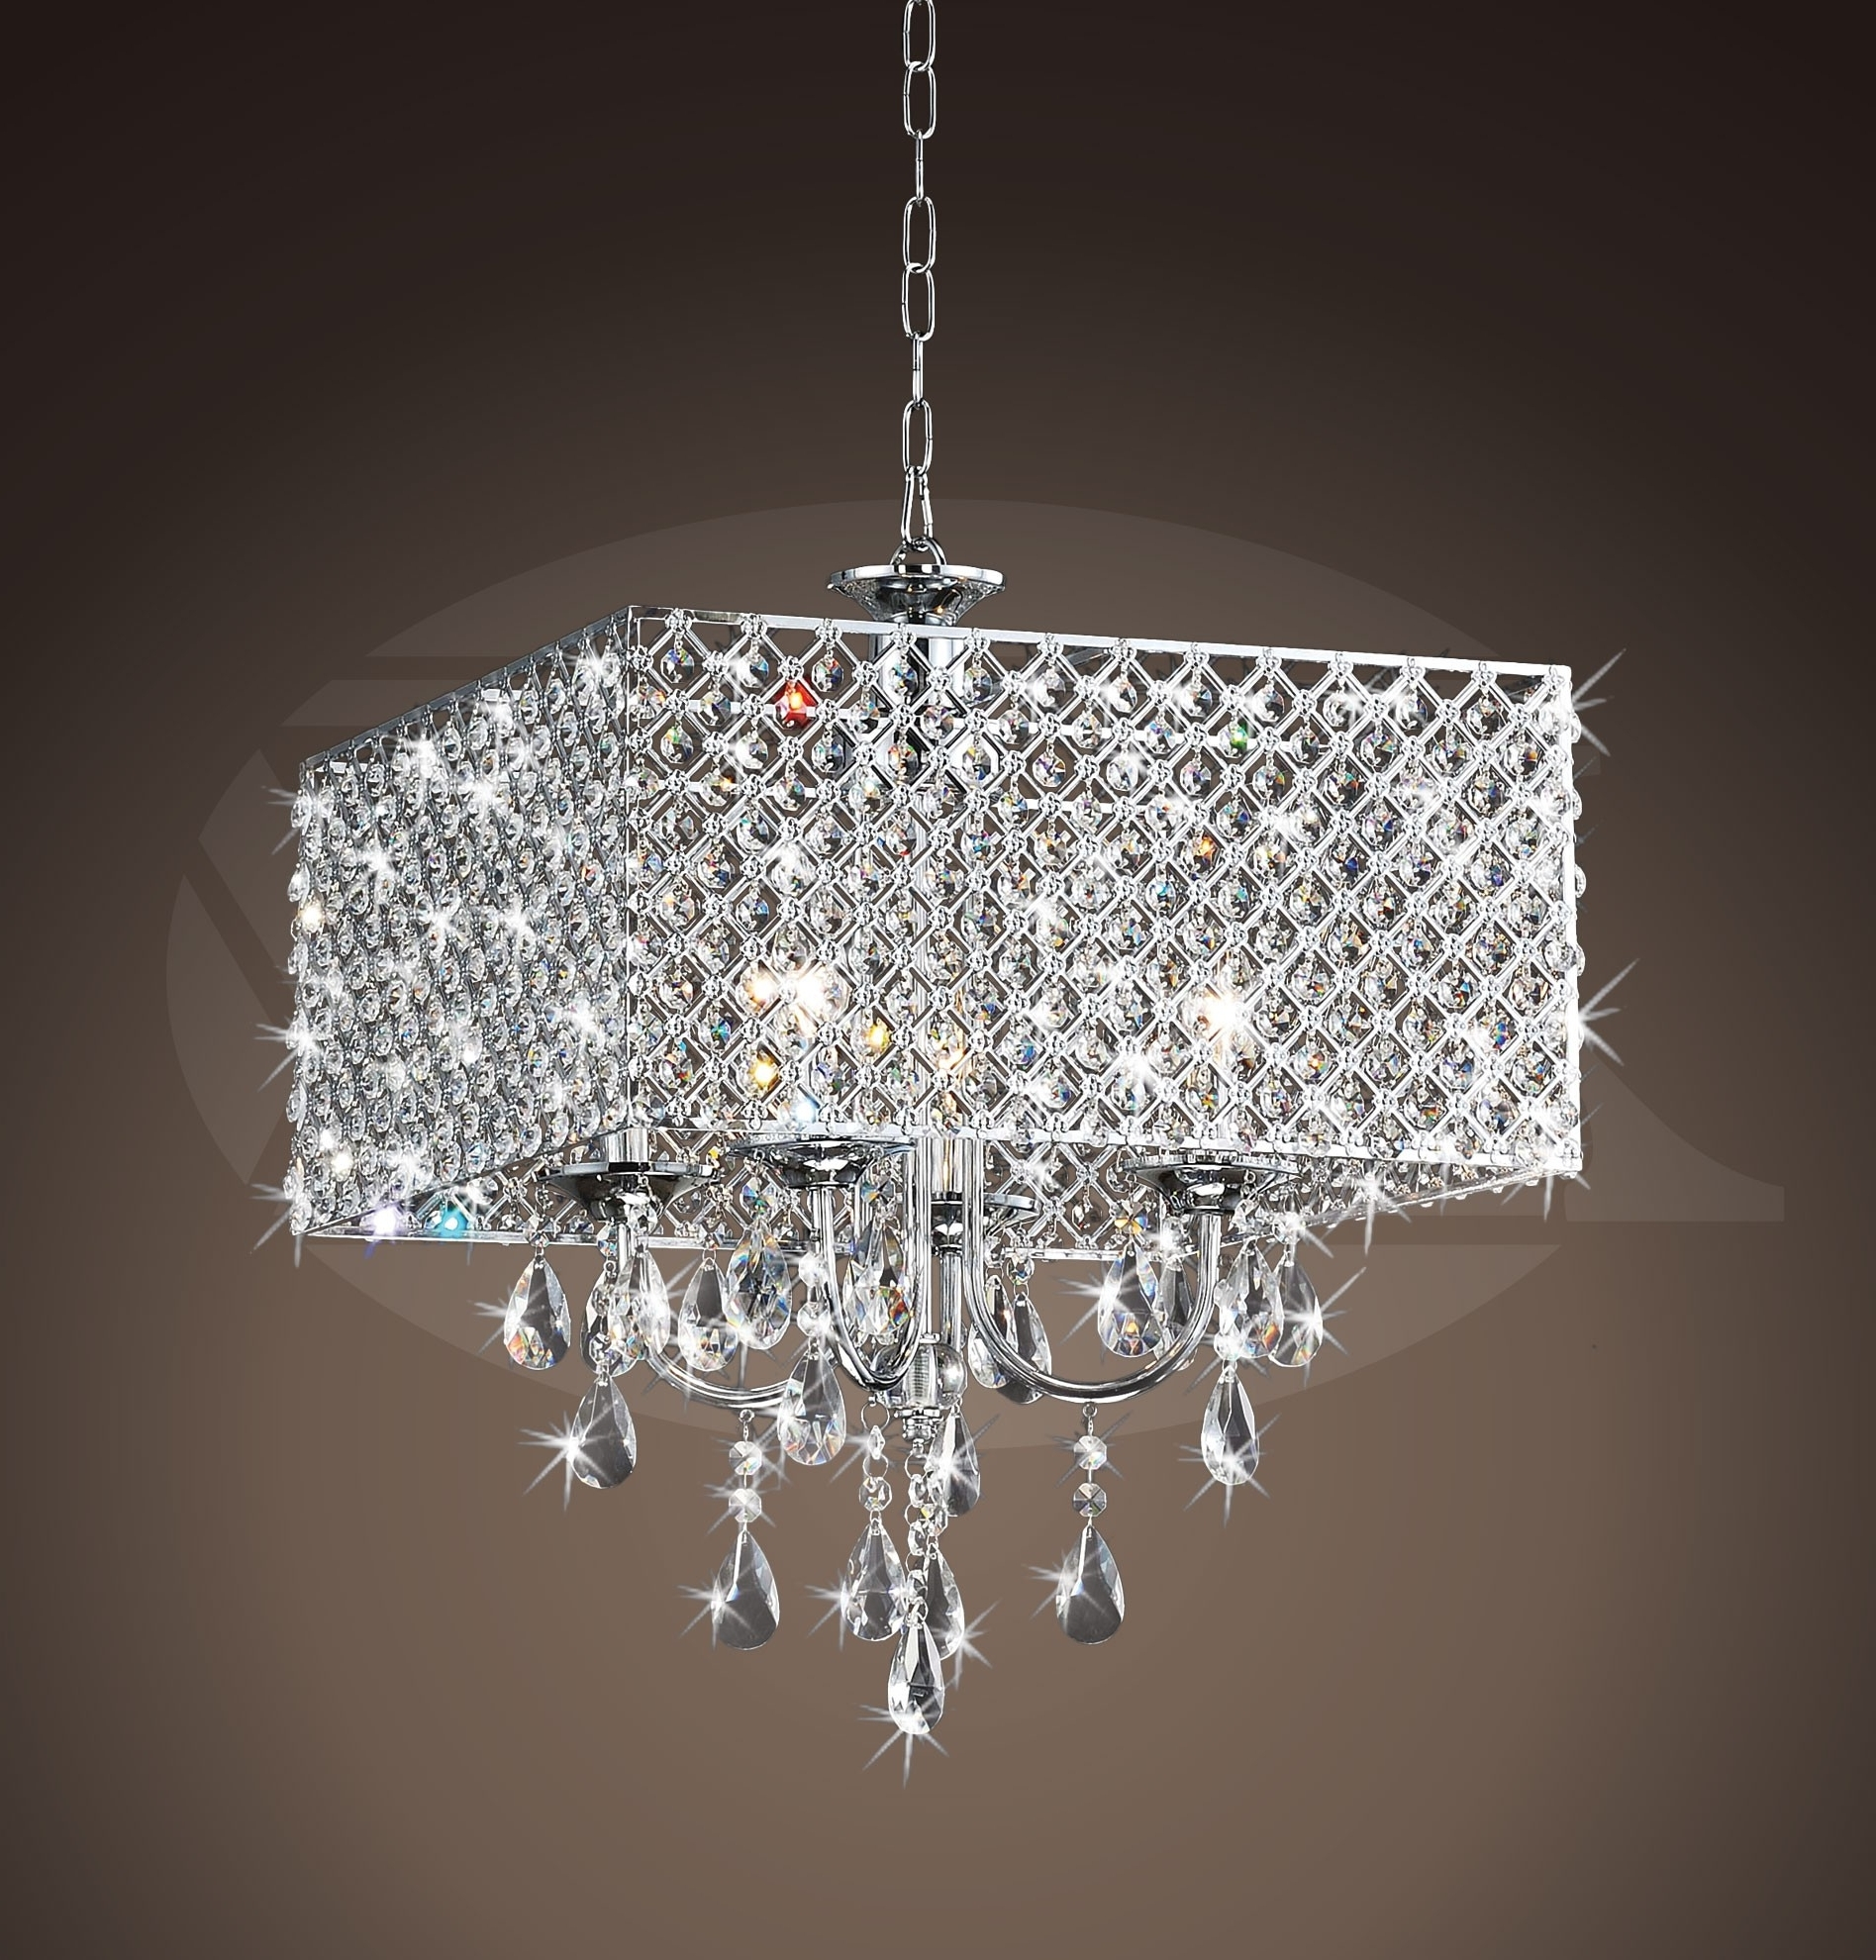 "Preferred 4 Light Chrome Crystal Chandeliers Pertaining To Rosemary Elegant Crystal Chrome 4 Light Square Chandelier (16""h X (View 7 of 20)"